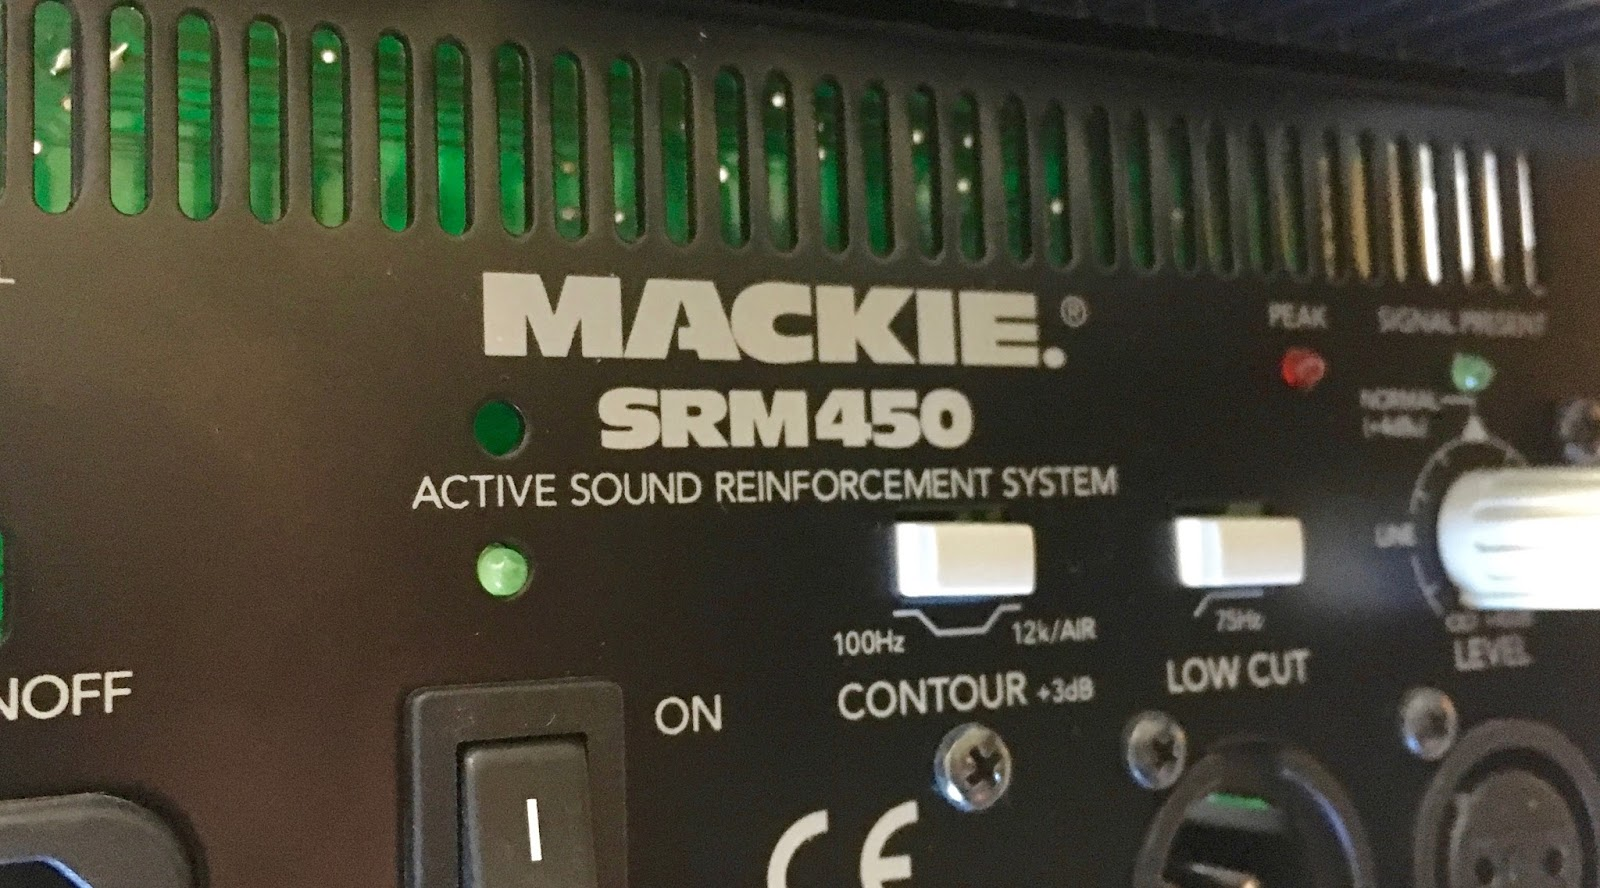 Phils technical blog power supply toroid in mackie srm450 pa a friend brought one of these very common pa powered loudspeakers over to the workshop an internal t4a mains fuse had blown and when i replaced it and asfbconference2016 Images